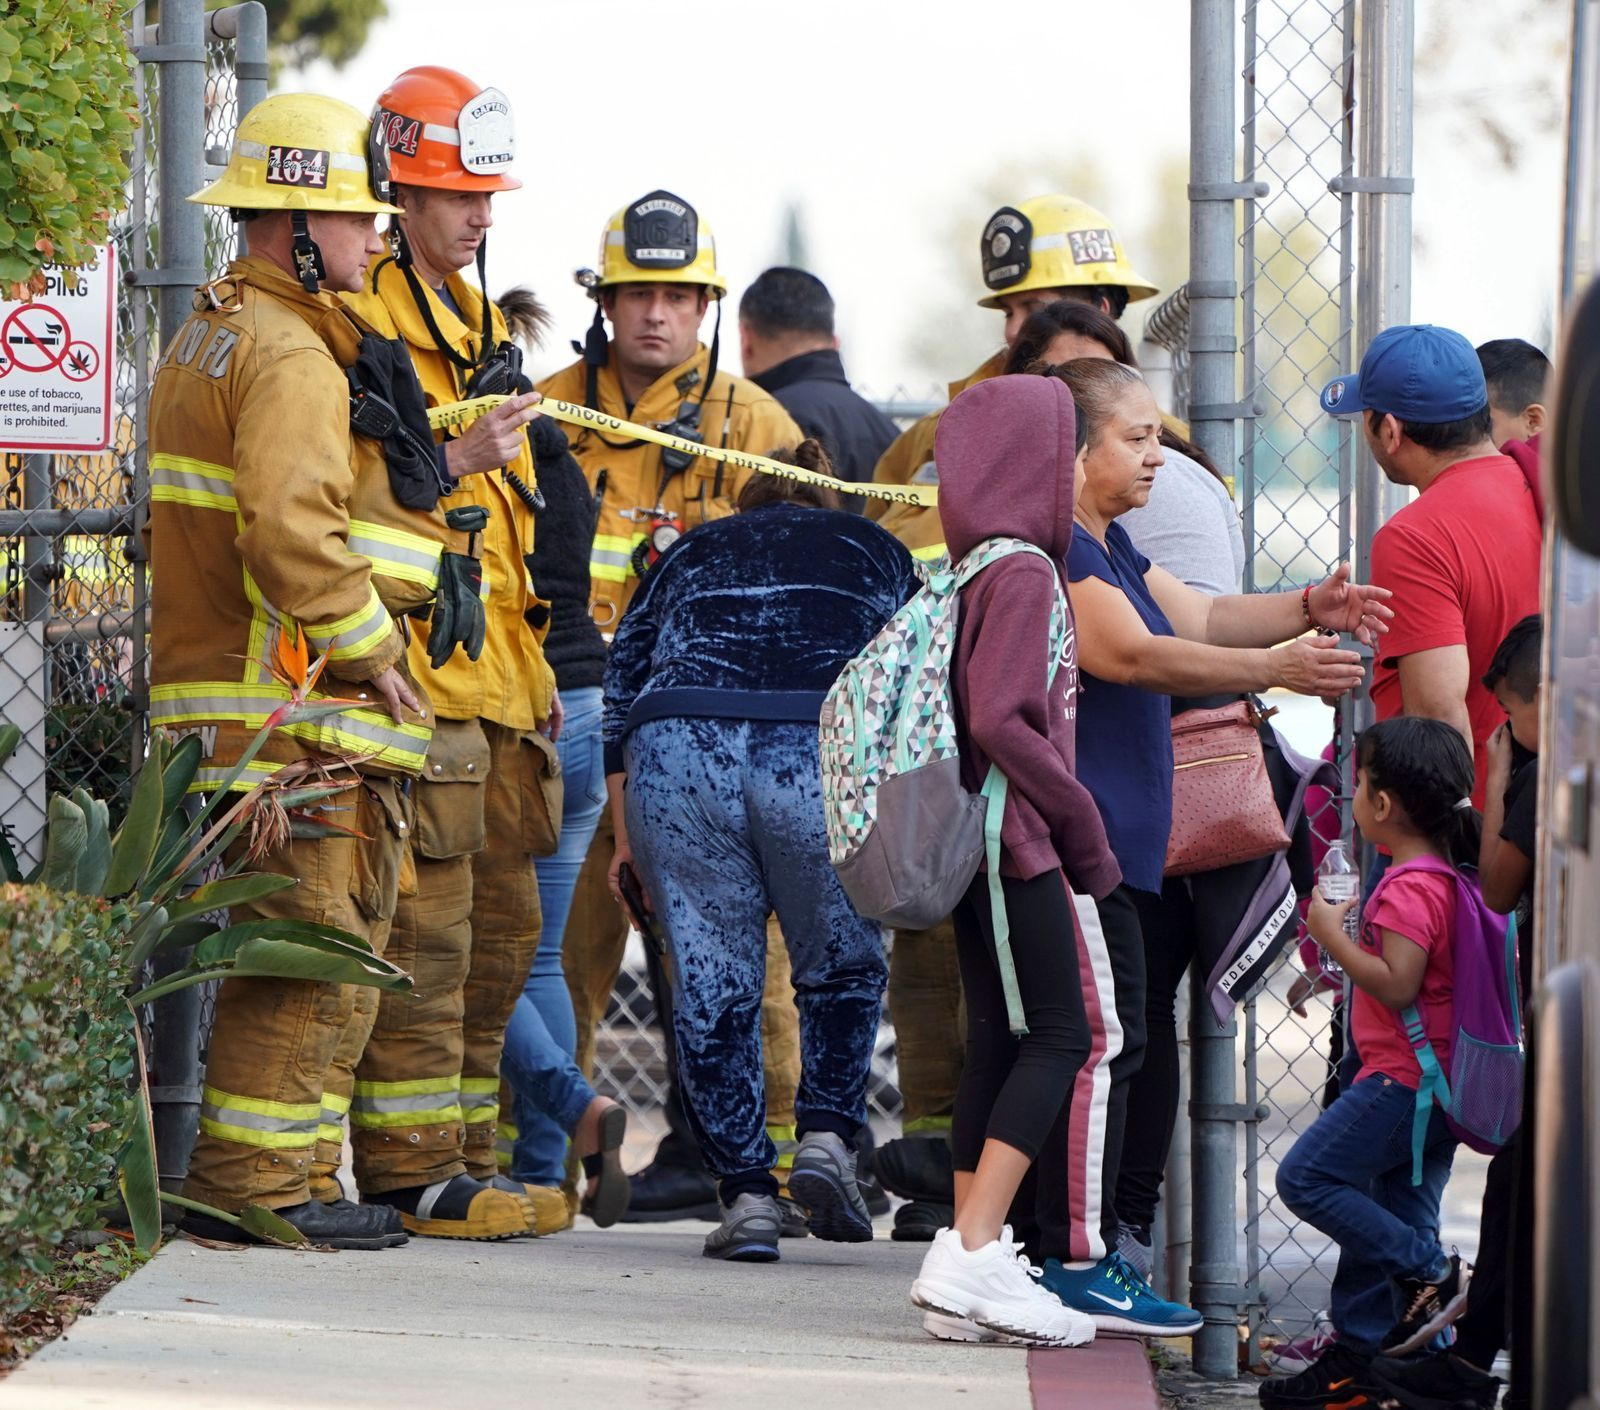 The LAFD was dispatched to a report of several children